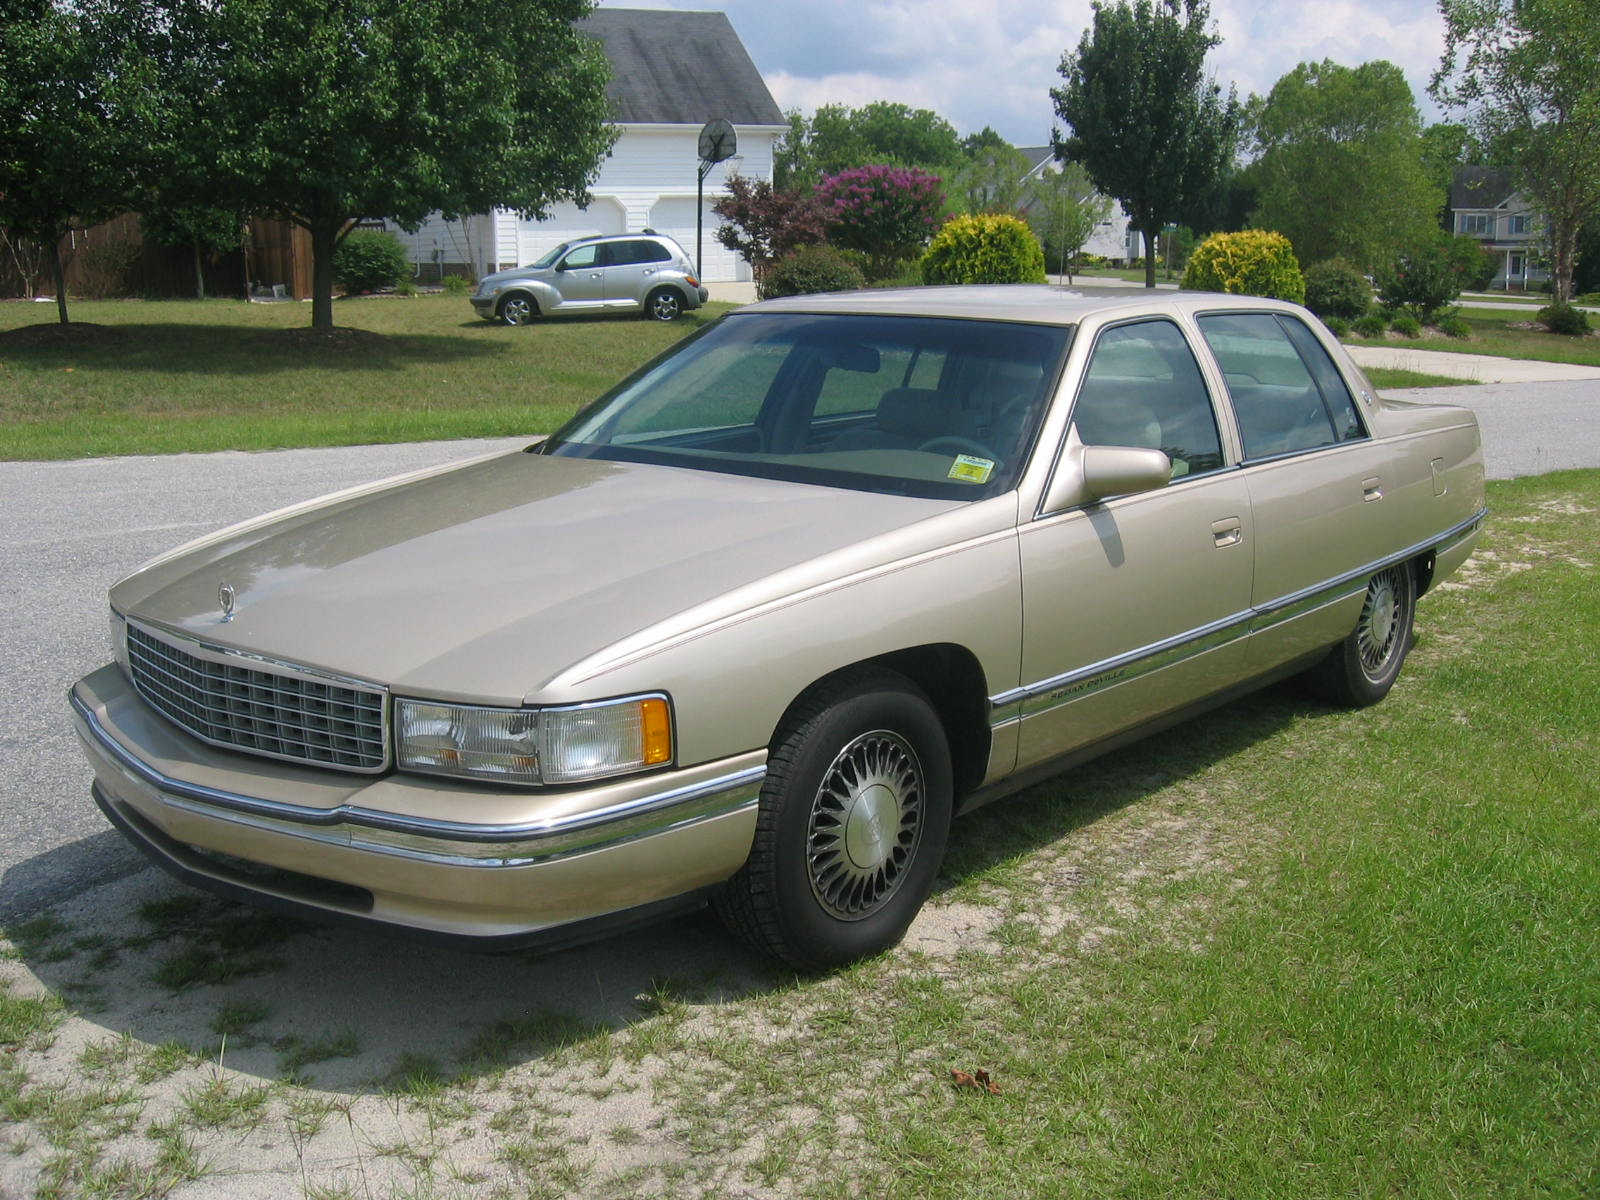 1994 Cadillac DeVille 4 Dr STD Sedan picture